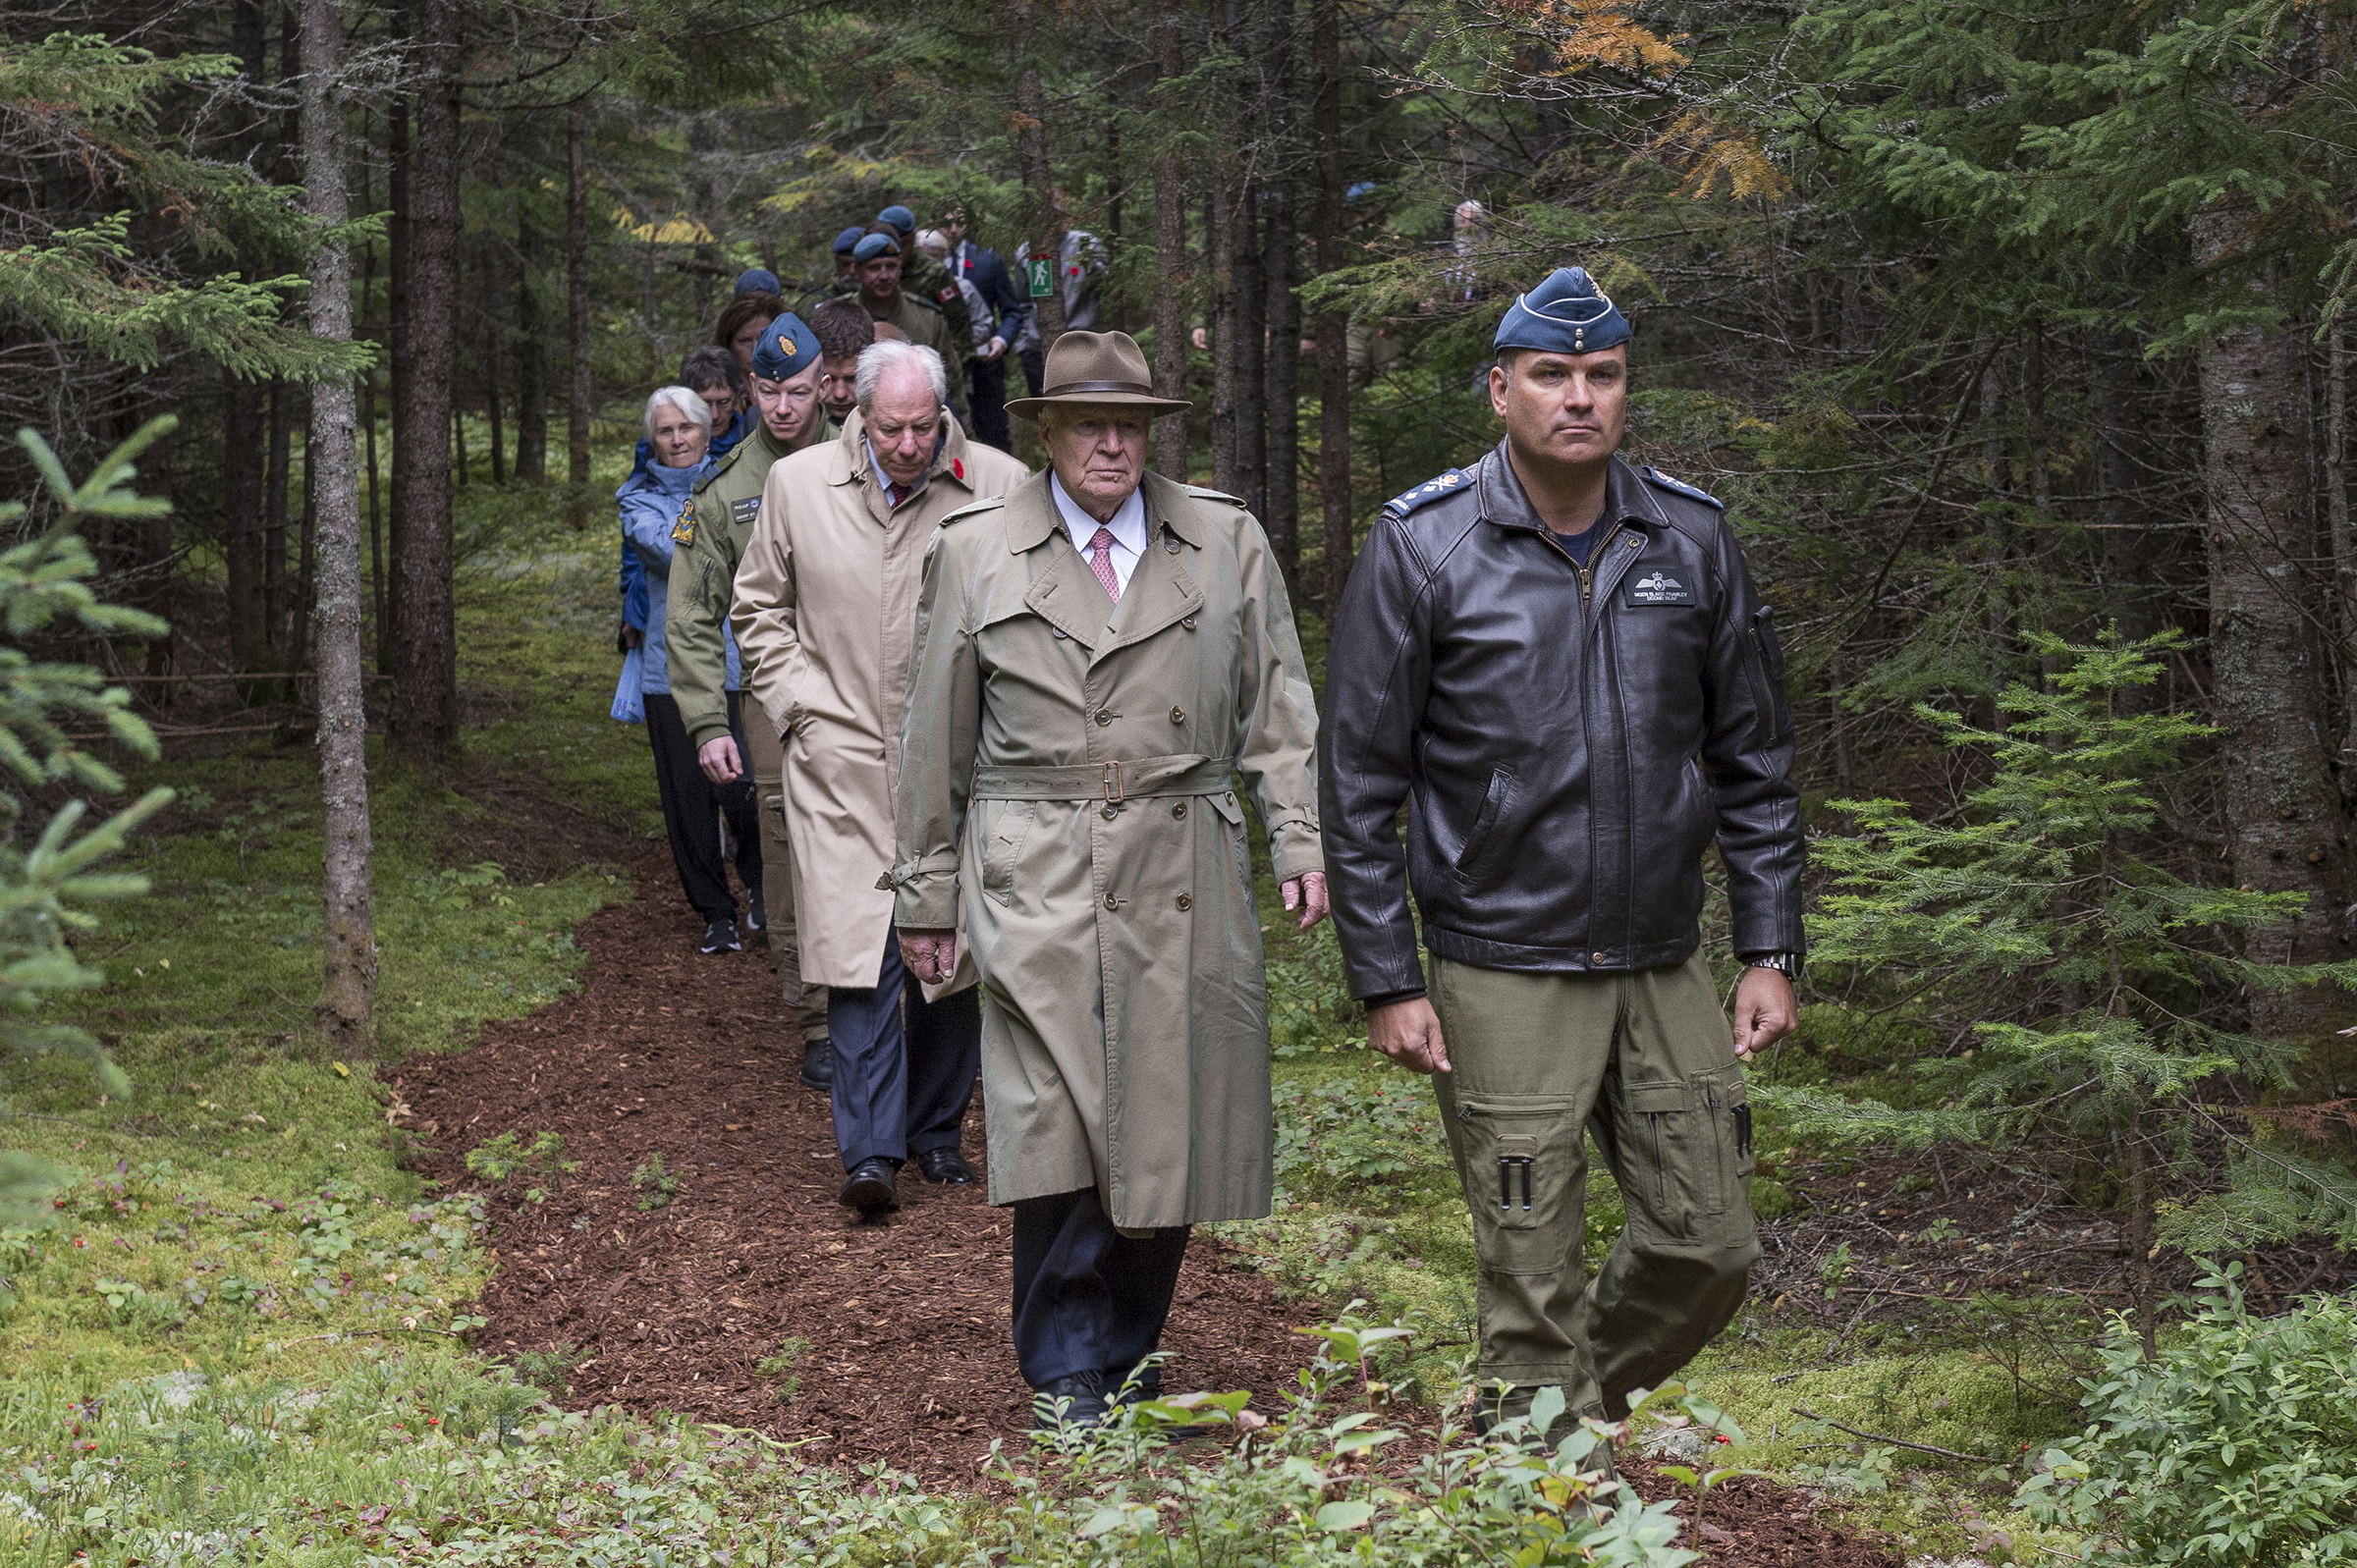 On September 14, 2019, Major-General Blaise Frawley, deputy commander of the Royal Canadian Air Force, leads the way to the crash site, followed by Mr. J.K. Irving and Mr. Jim Irving, both of of J.D Irving, Limited, and other guests for the unveiling of a memorial commemorating Warrant Officer Class 2 James Edward Doan and Corporal David Alexander Rennie who were the first members of the RCAF to die on Canadian soil during the Second World War. PHOTO: Corporal Nicolas Alonso, GN02-2019-0949-007